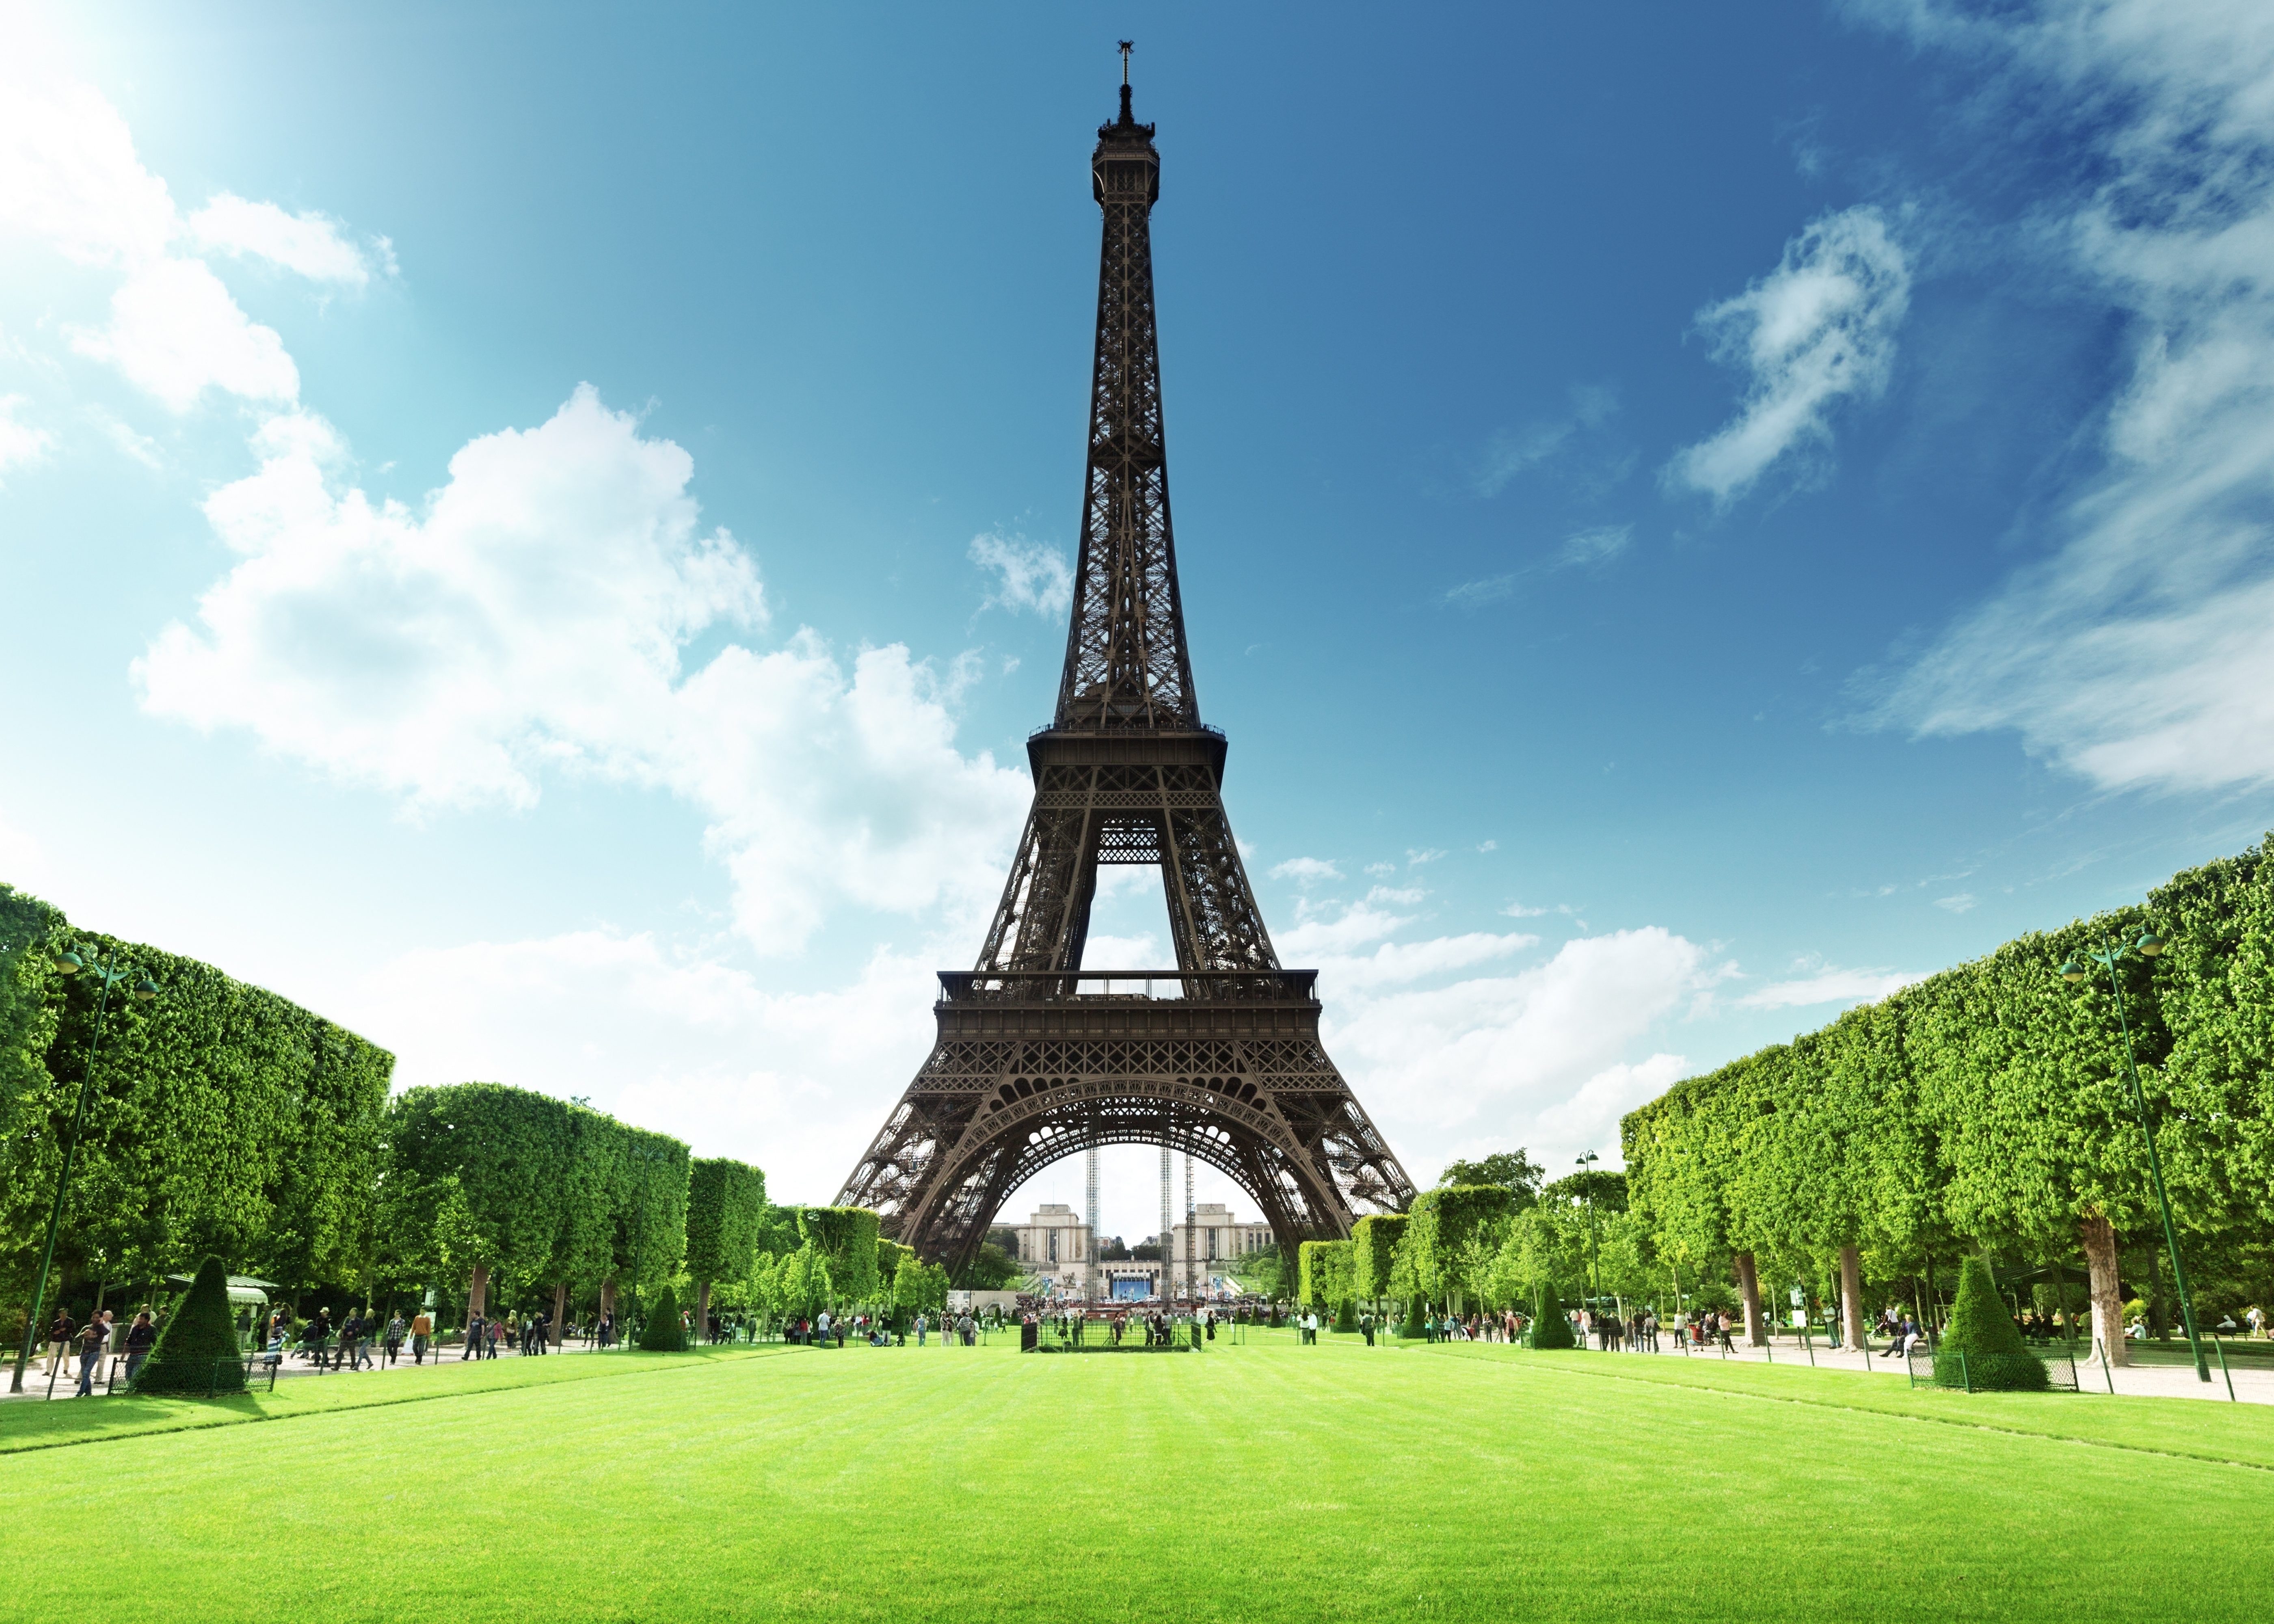 High Quality Wallpaper Of The Eiffel Tower, Photo Of Park